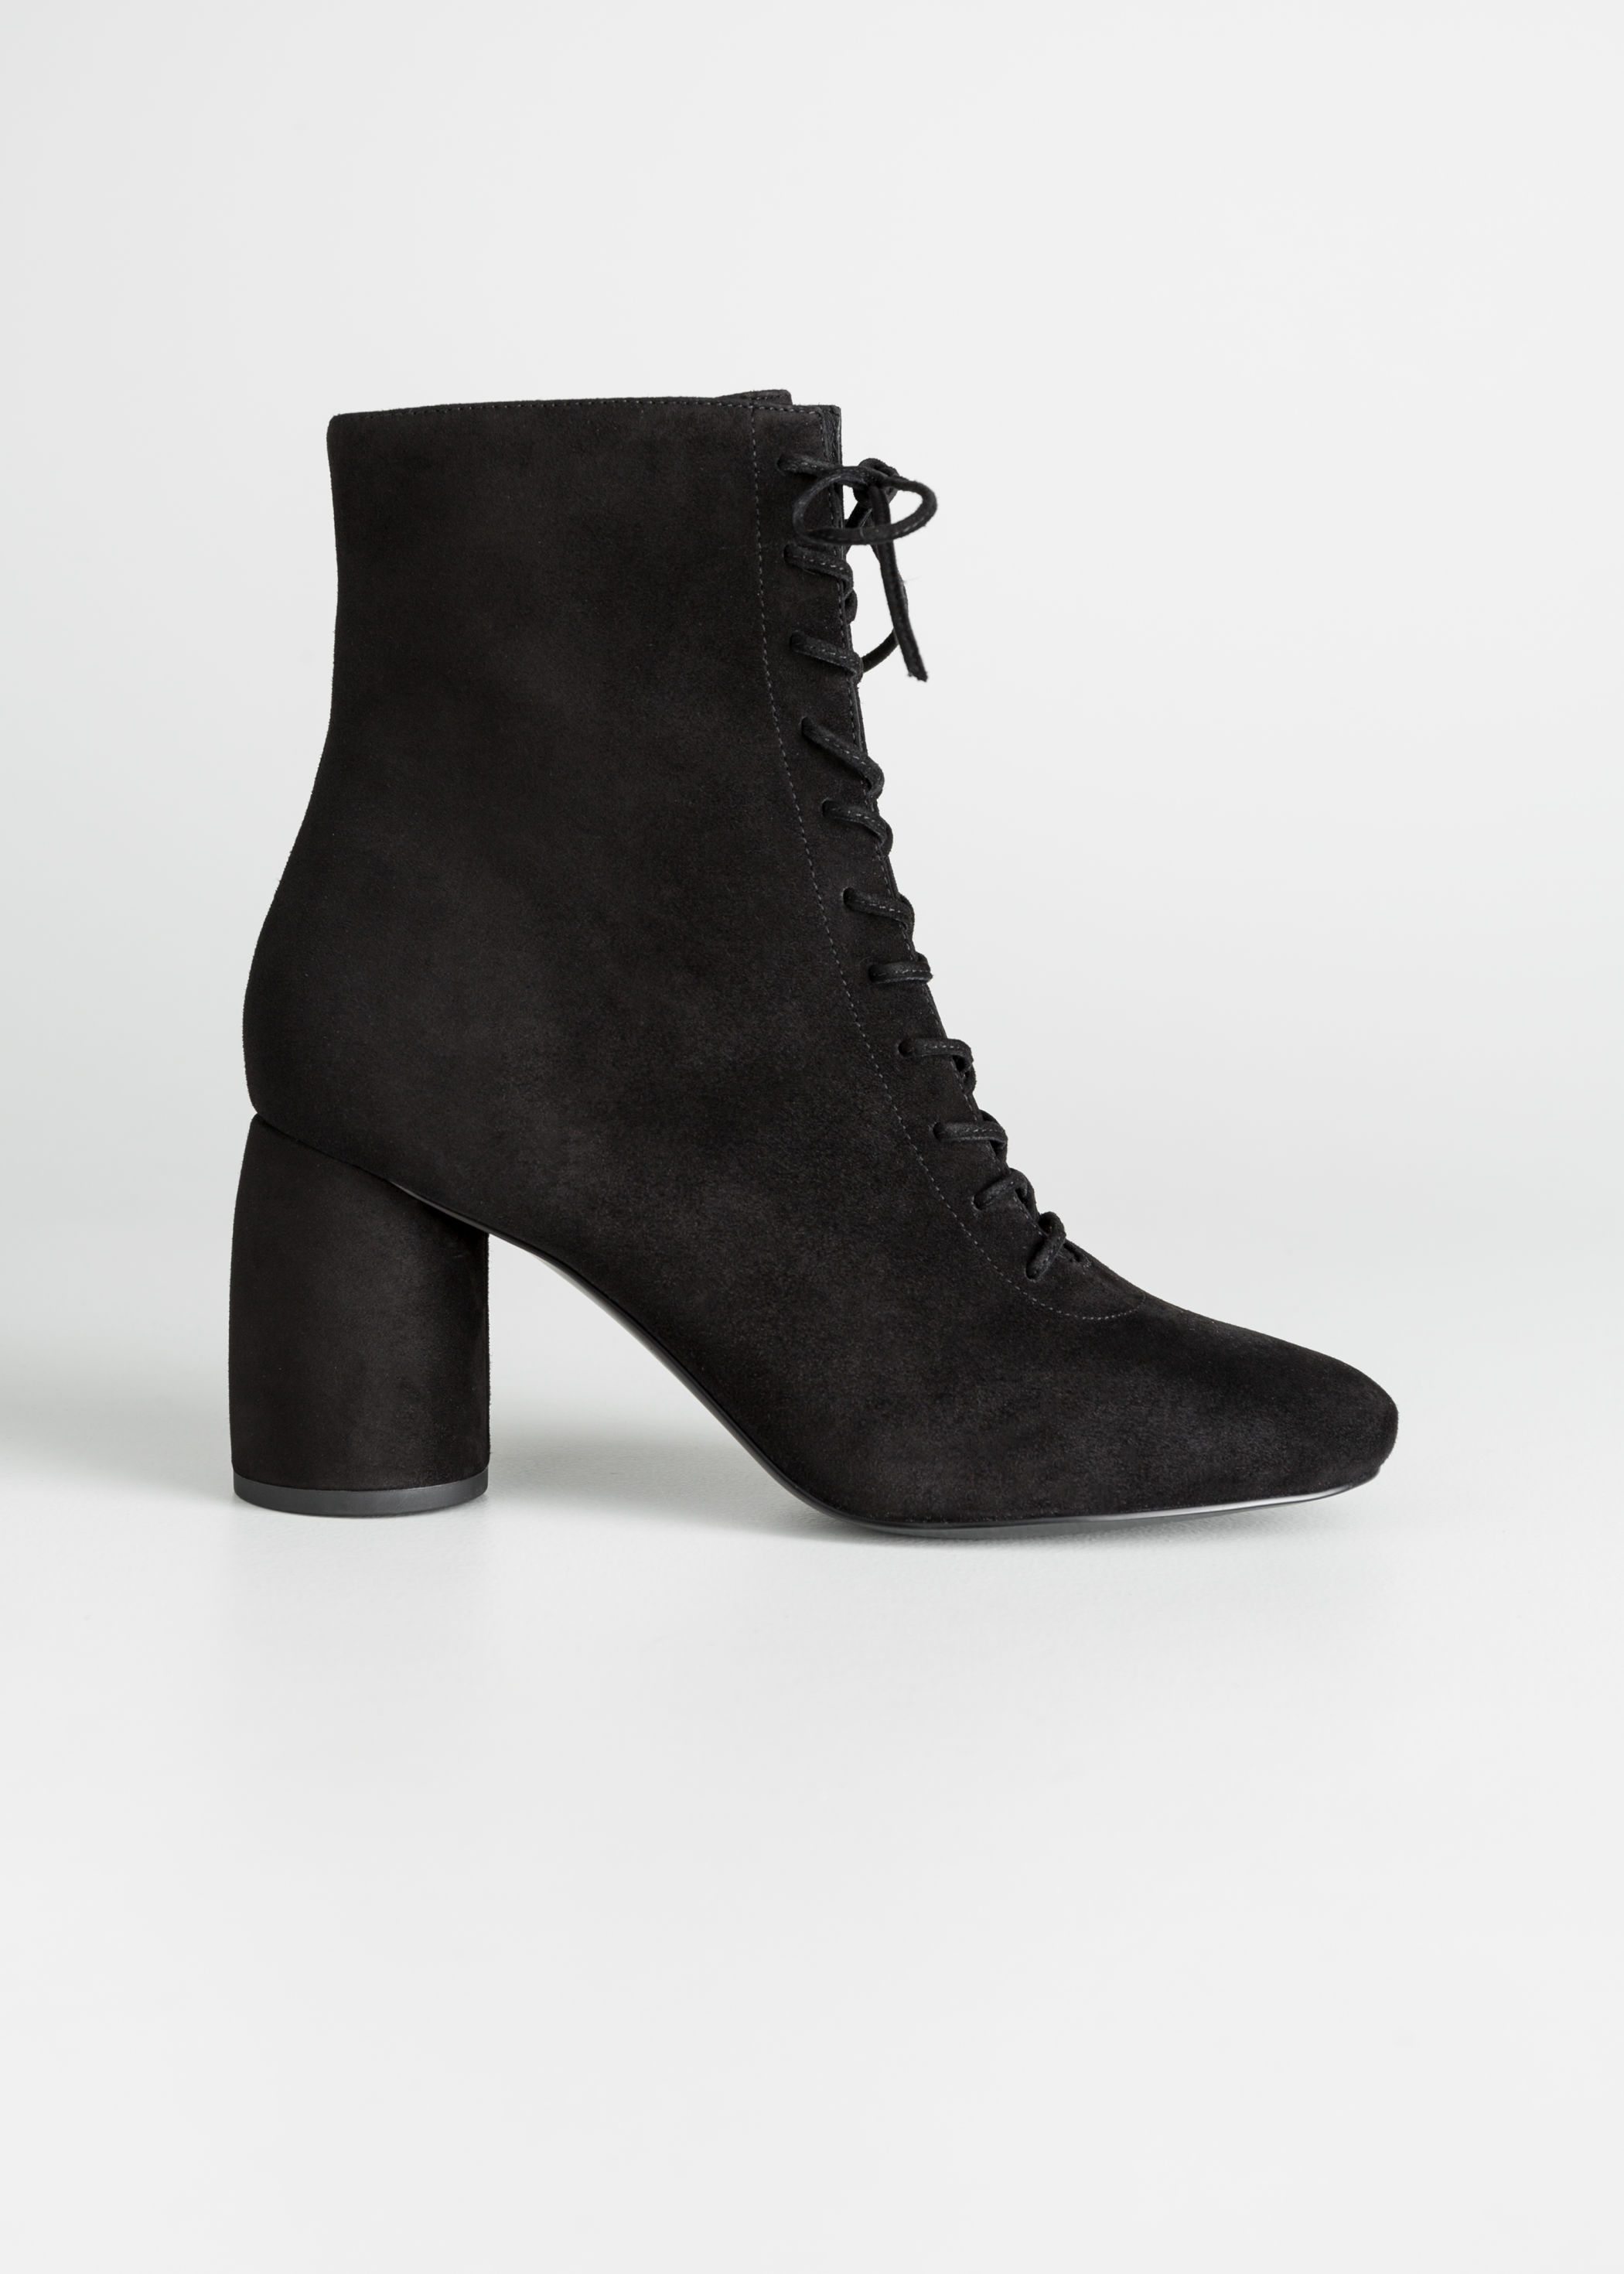 \u0026amp; Other Stories + Lace Up Suede Boots